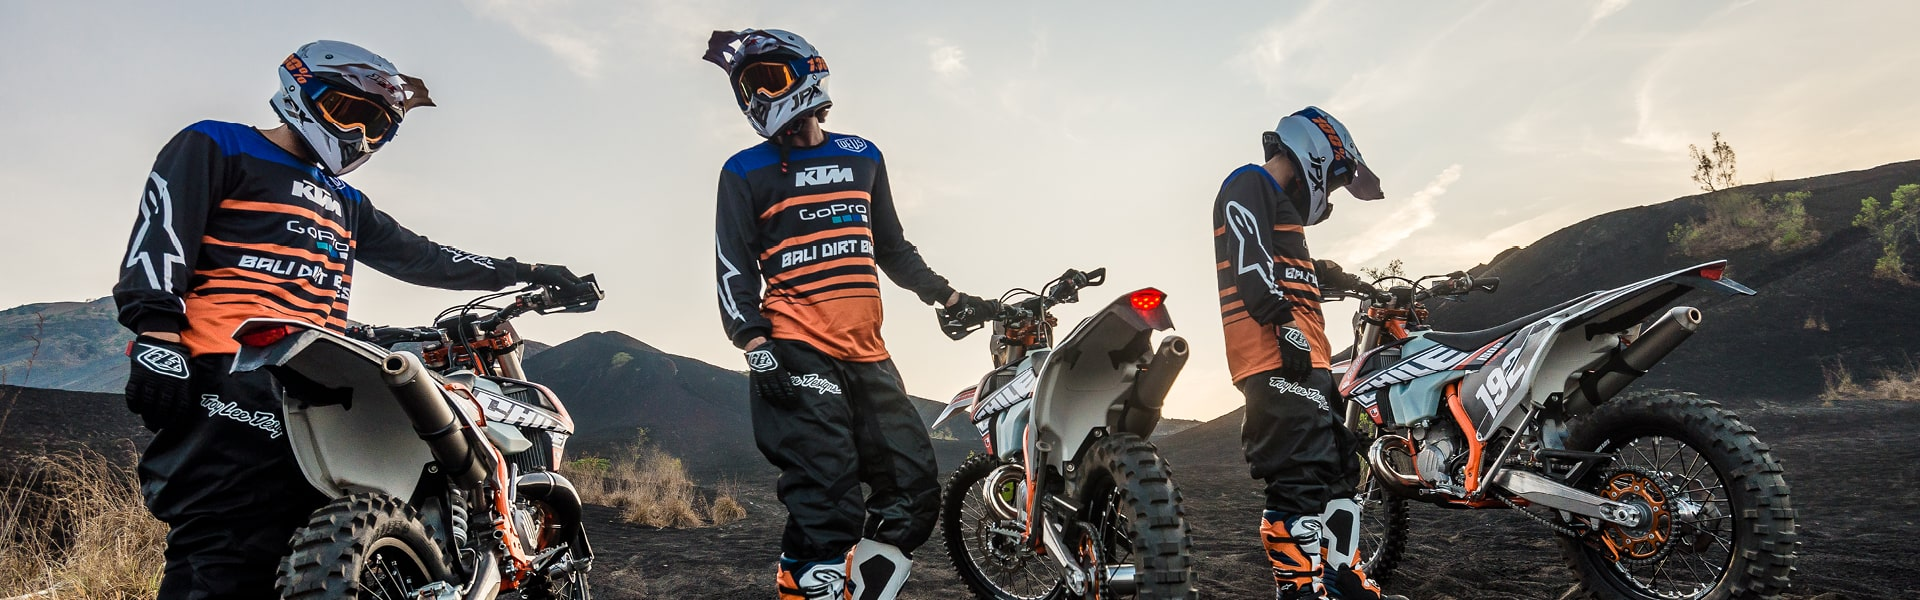 Bali_Dirt_Bikes_Home_Slider_Trails1